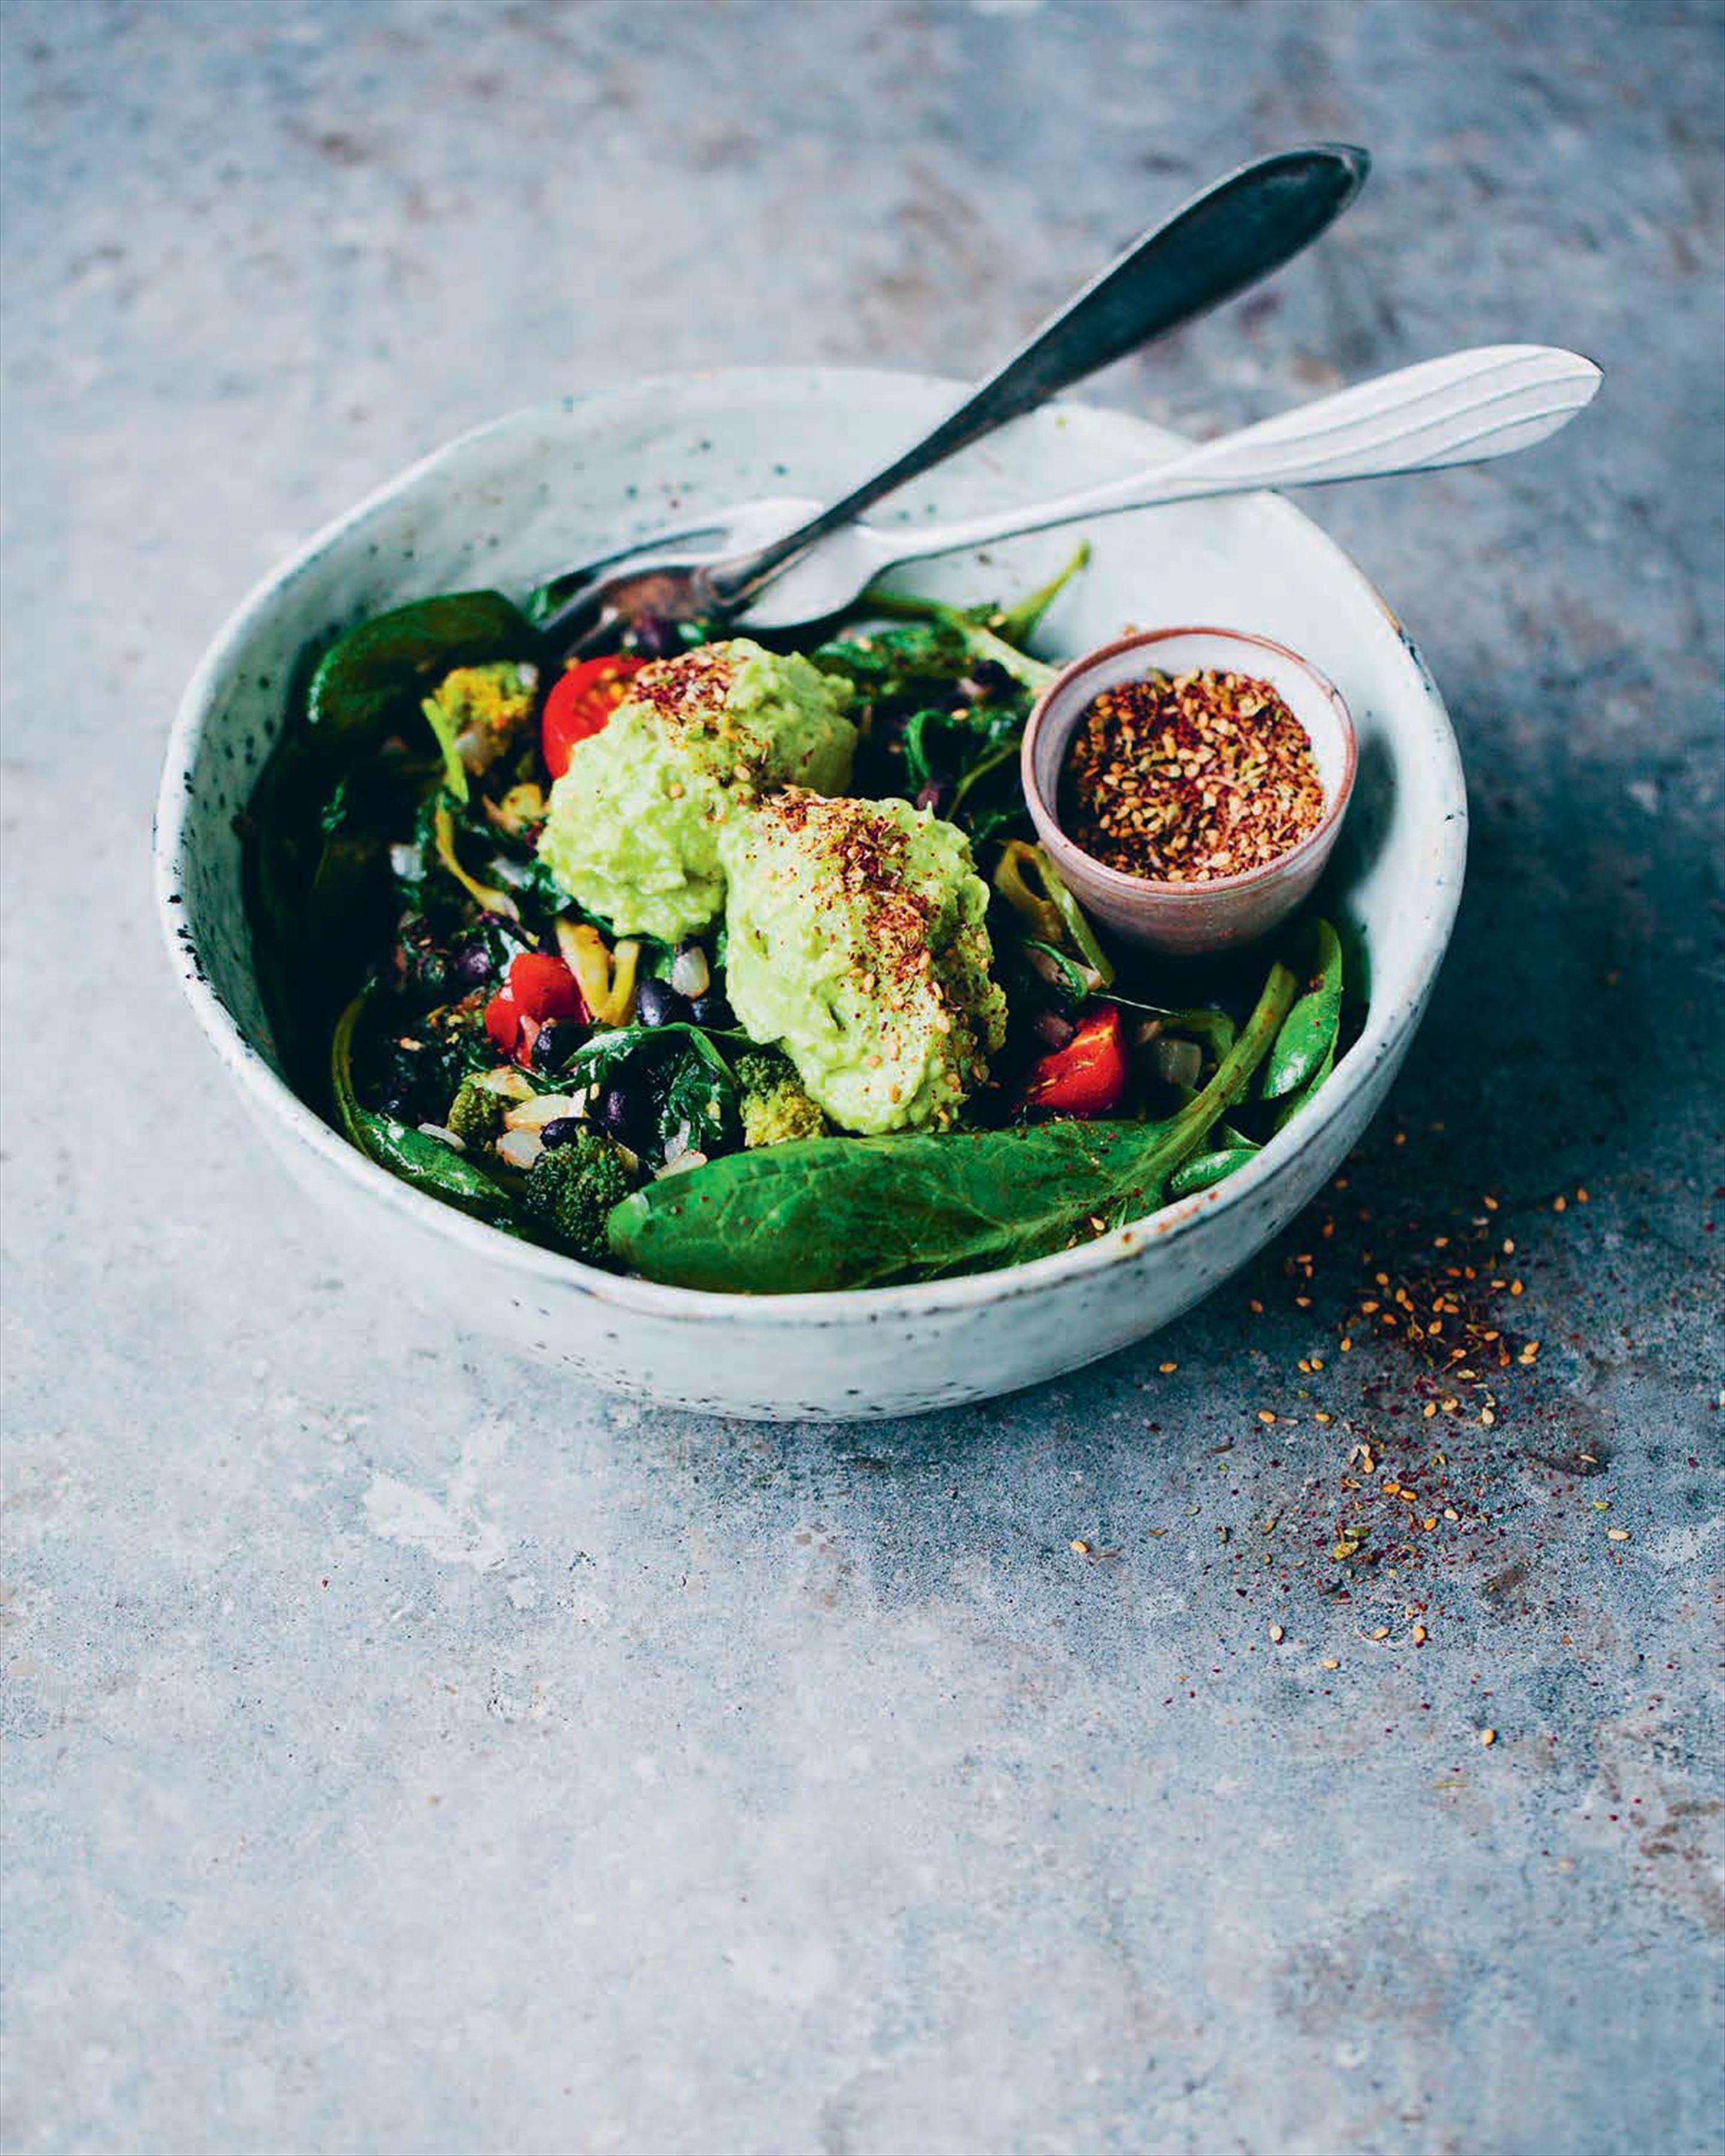 Warm black beans and greens with avo and za'atar